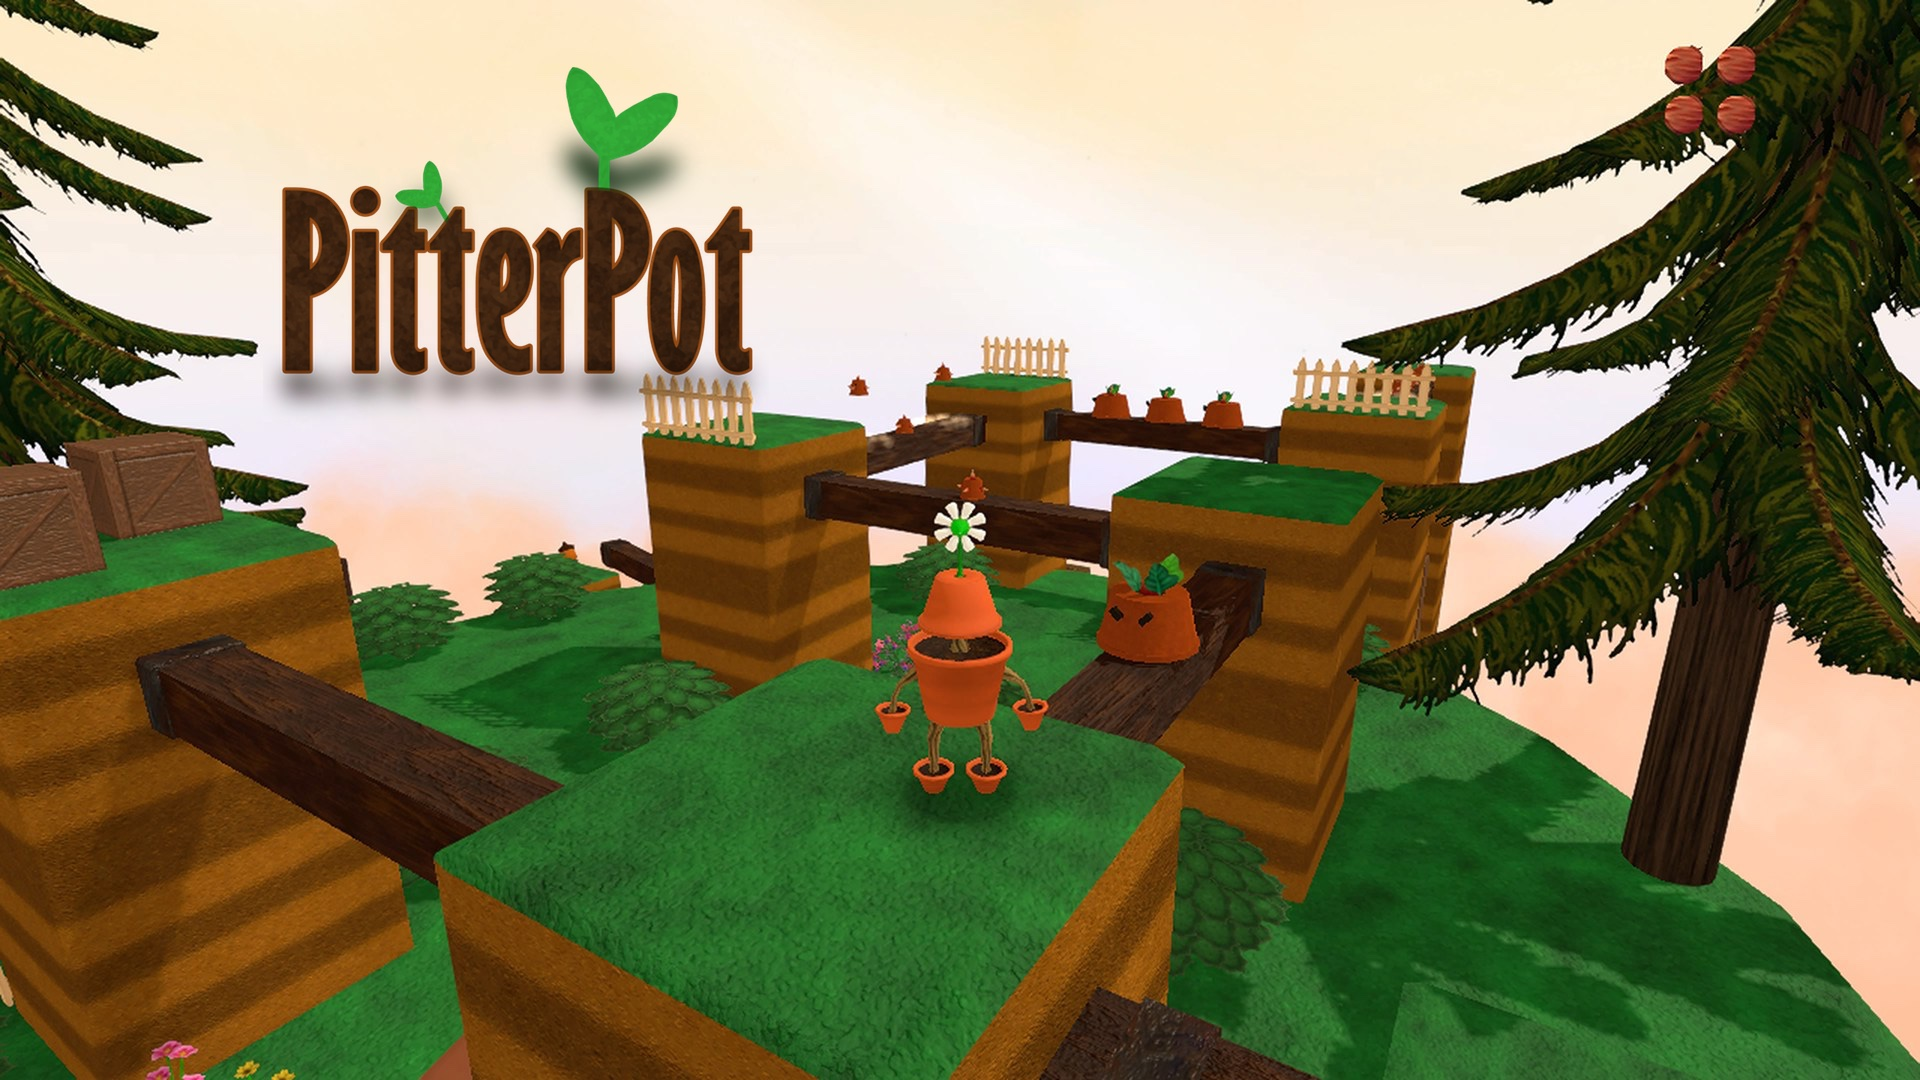 Pitterpot – PS4 | Review